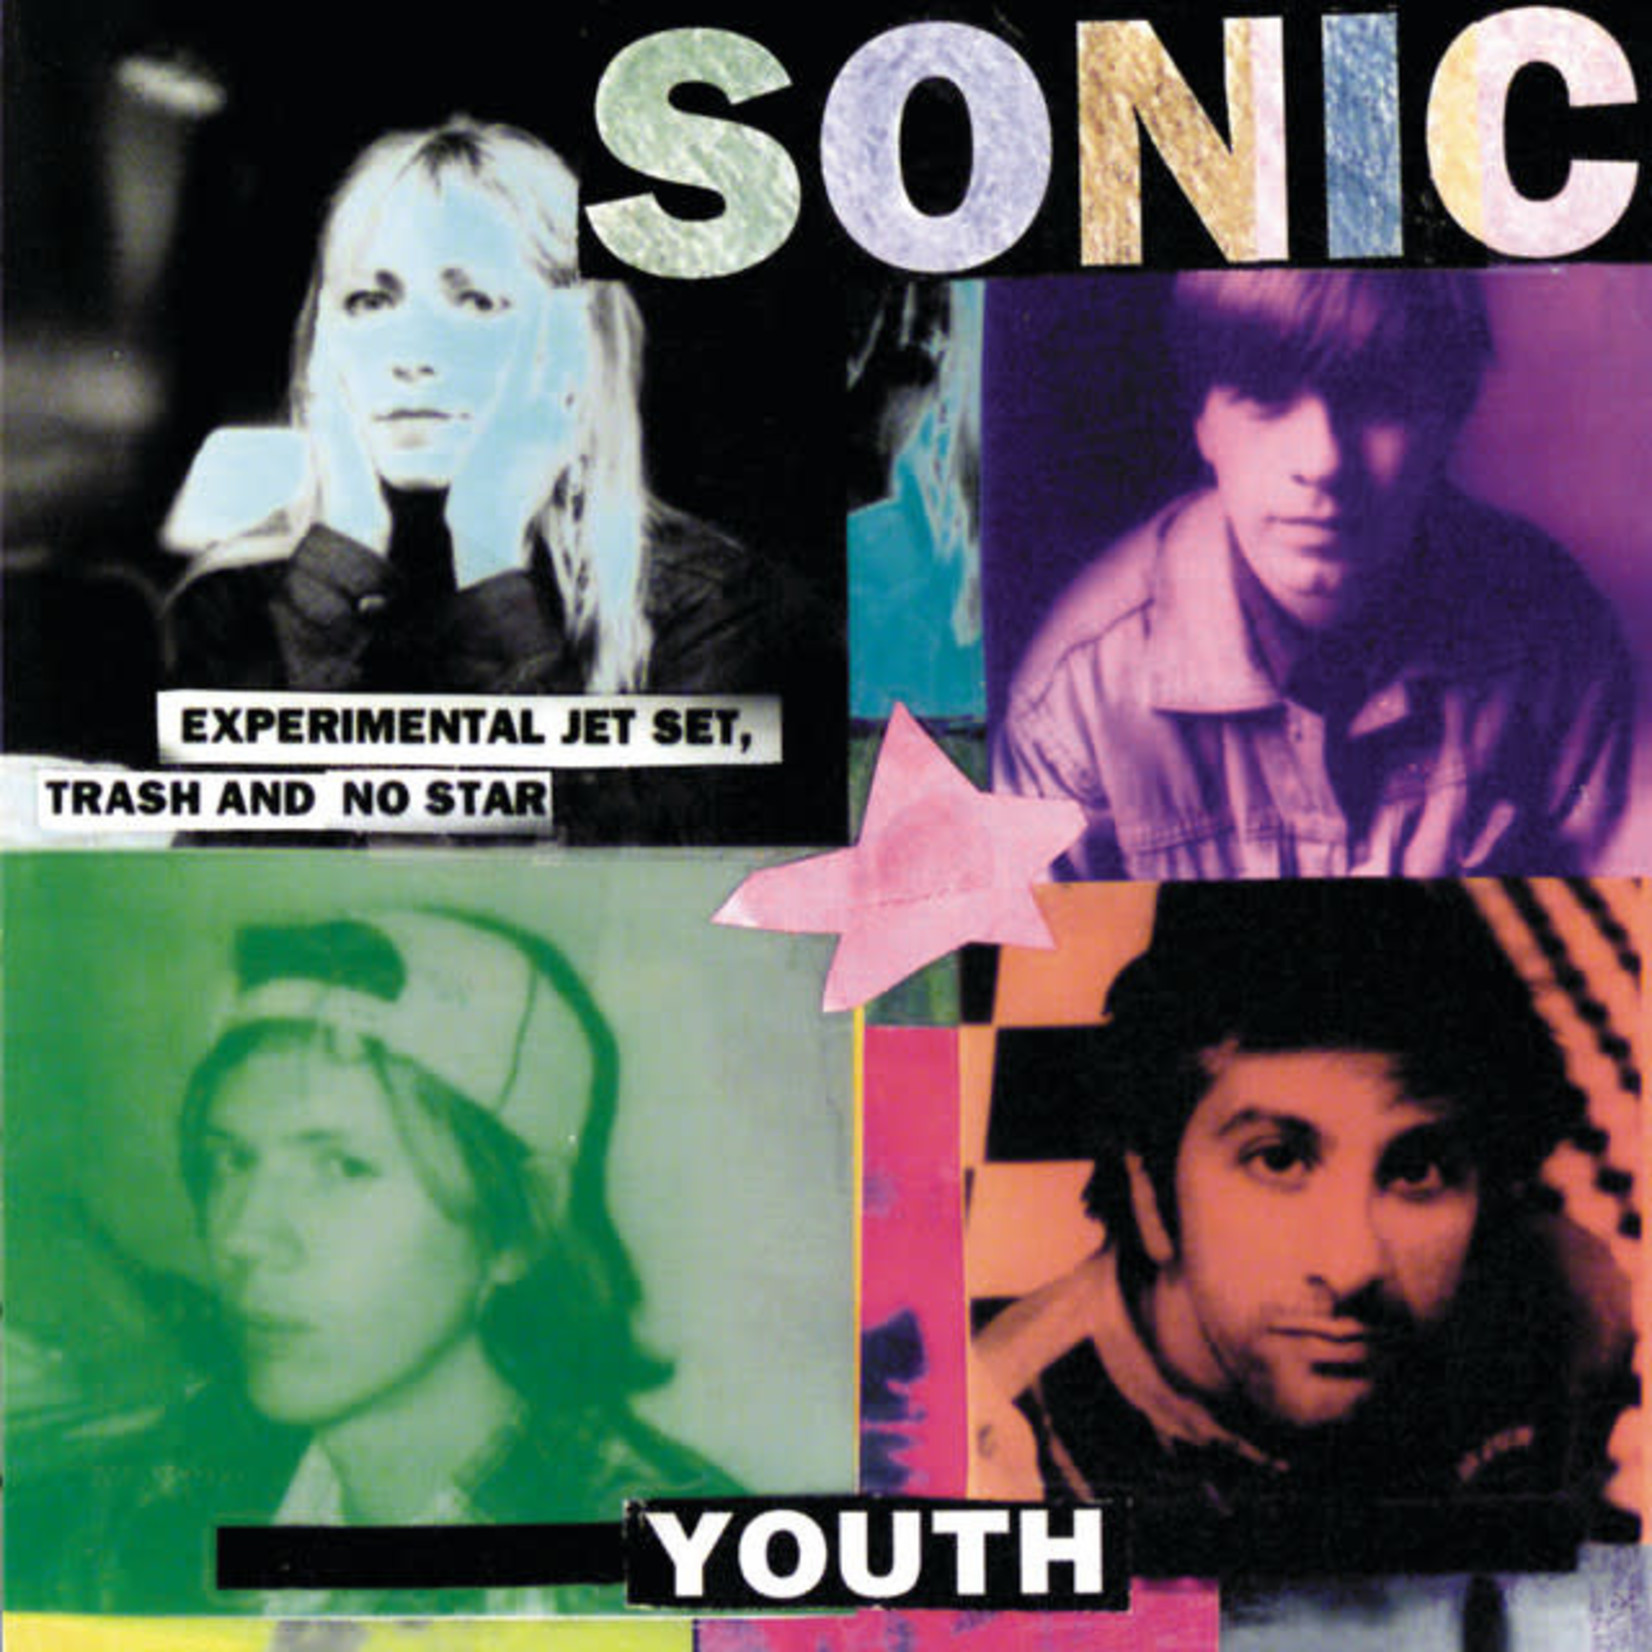 Vinyl Sonic Youth - Experimental Jet Set, Trash and No Star